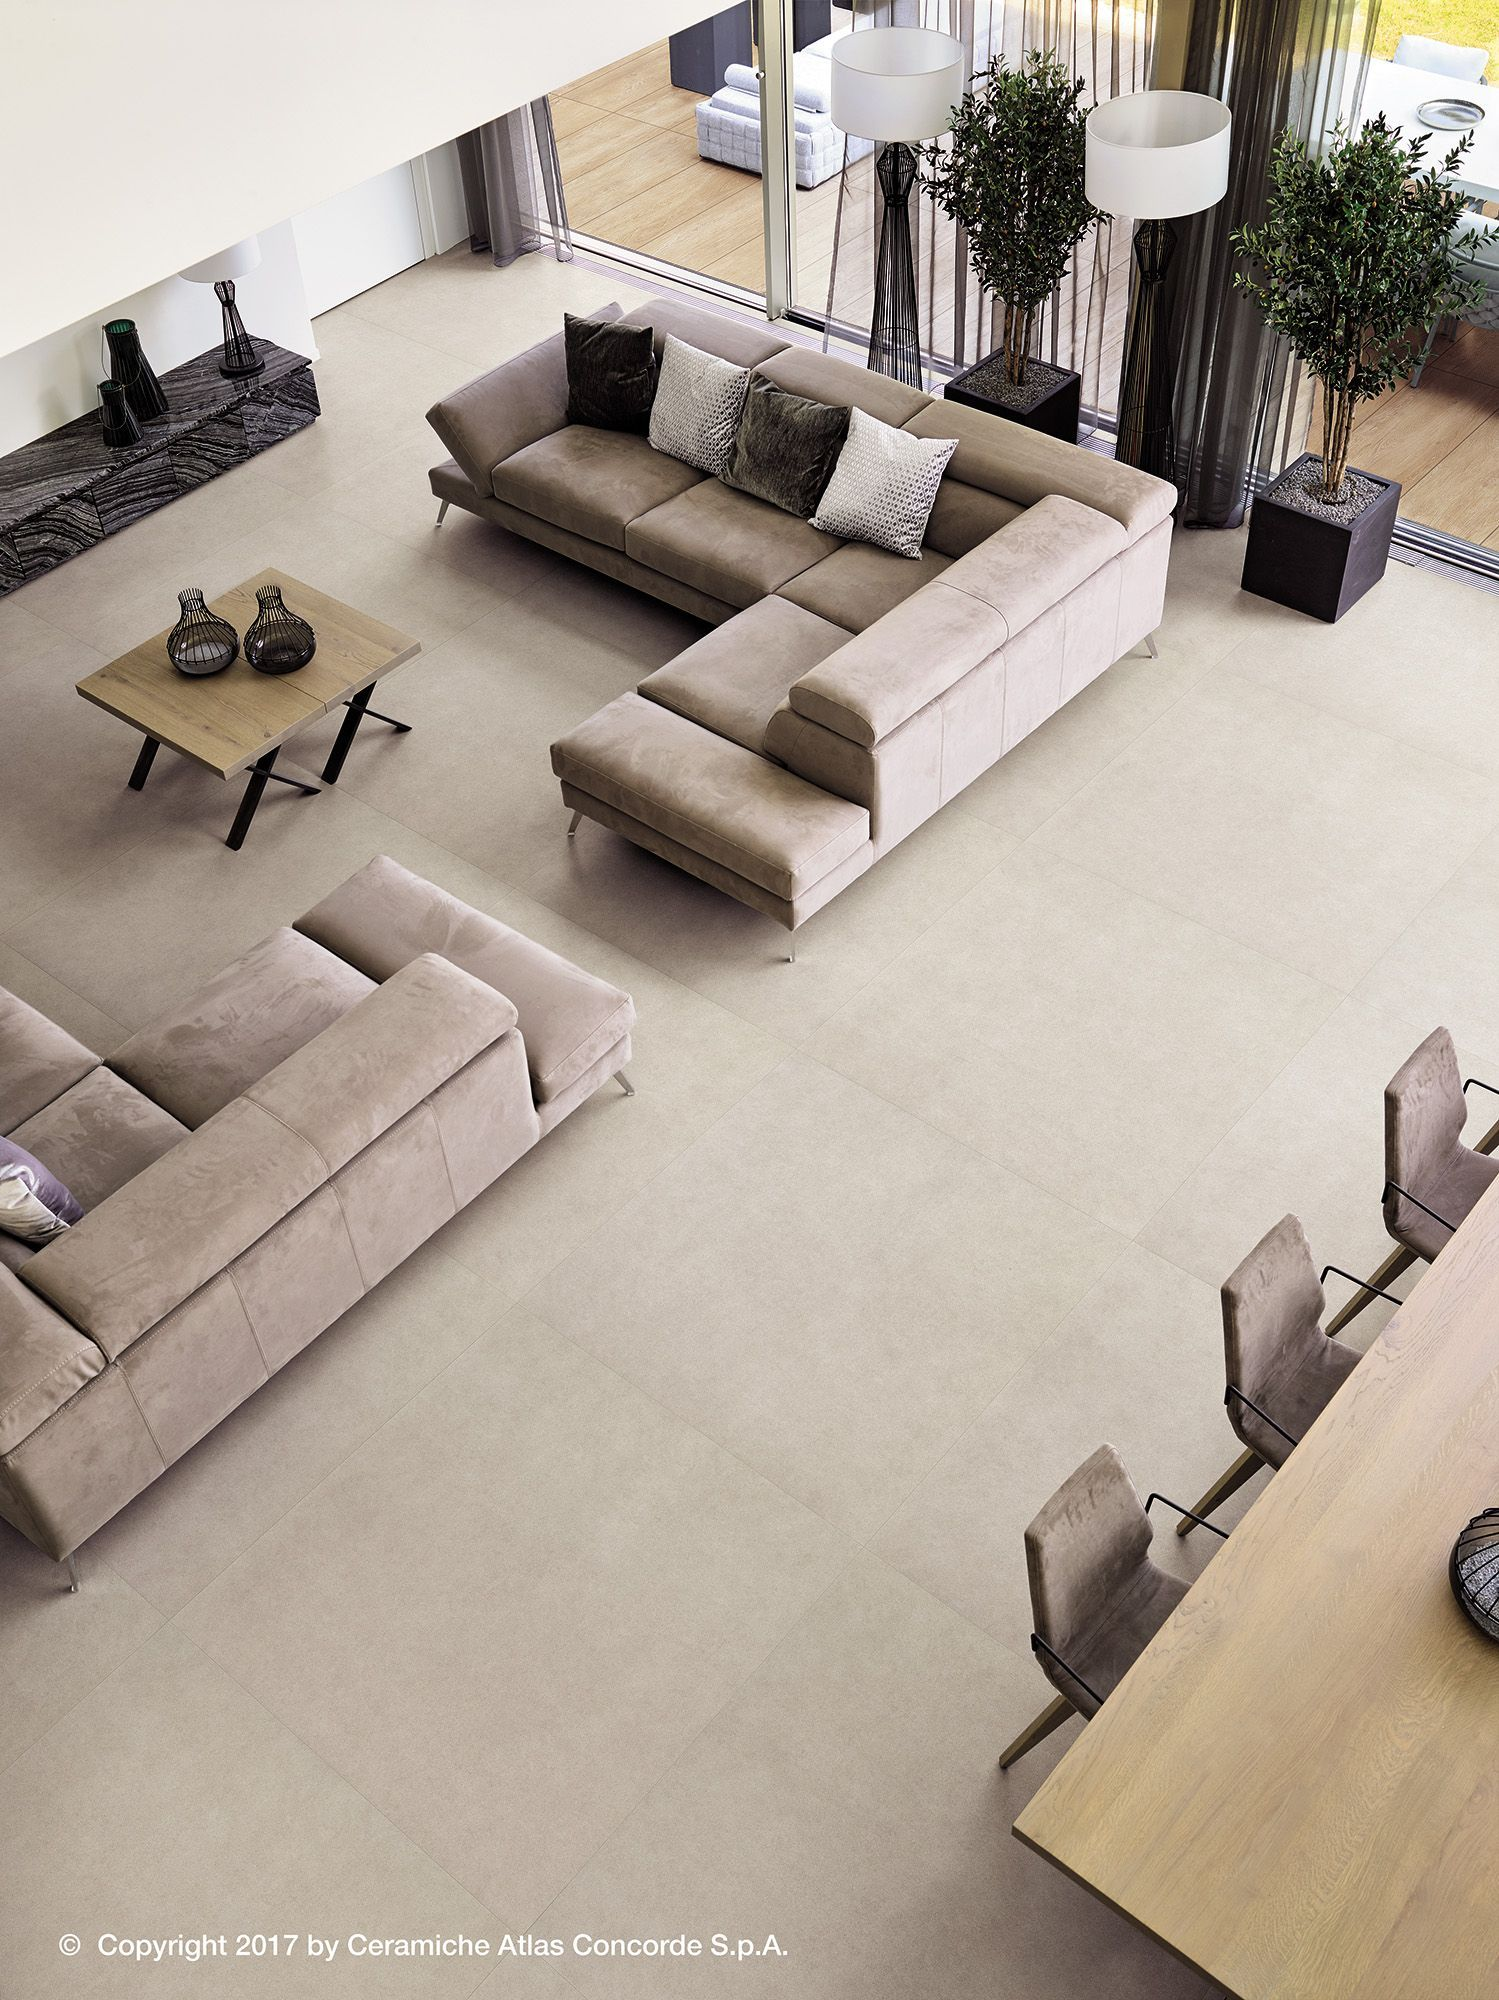 Tiles For Living Room Floor In 2020 Living Room Tiles Floor Tiles For Home House Flooring #tile #design #living #room